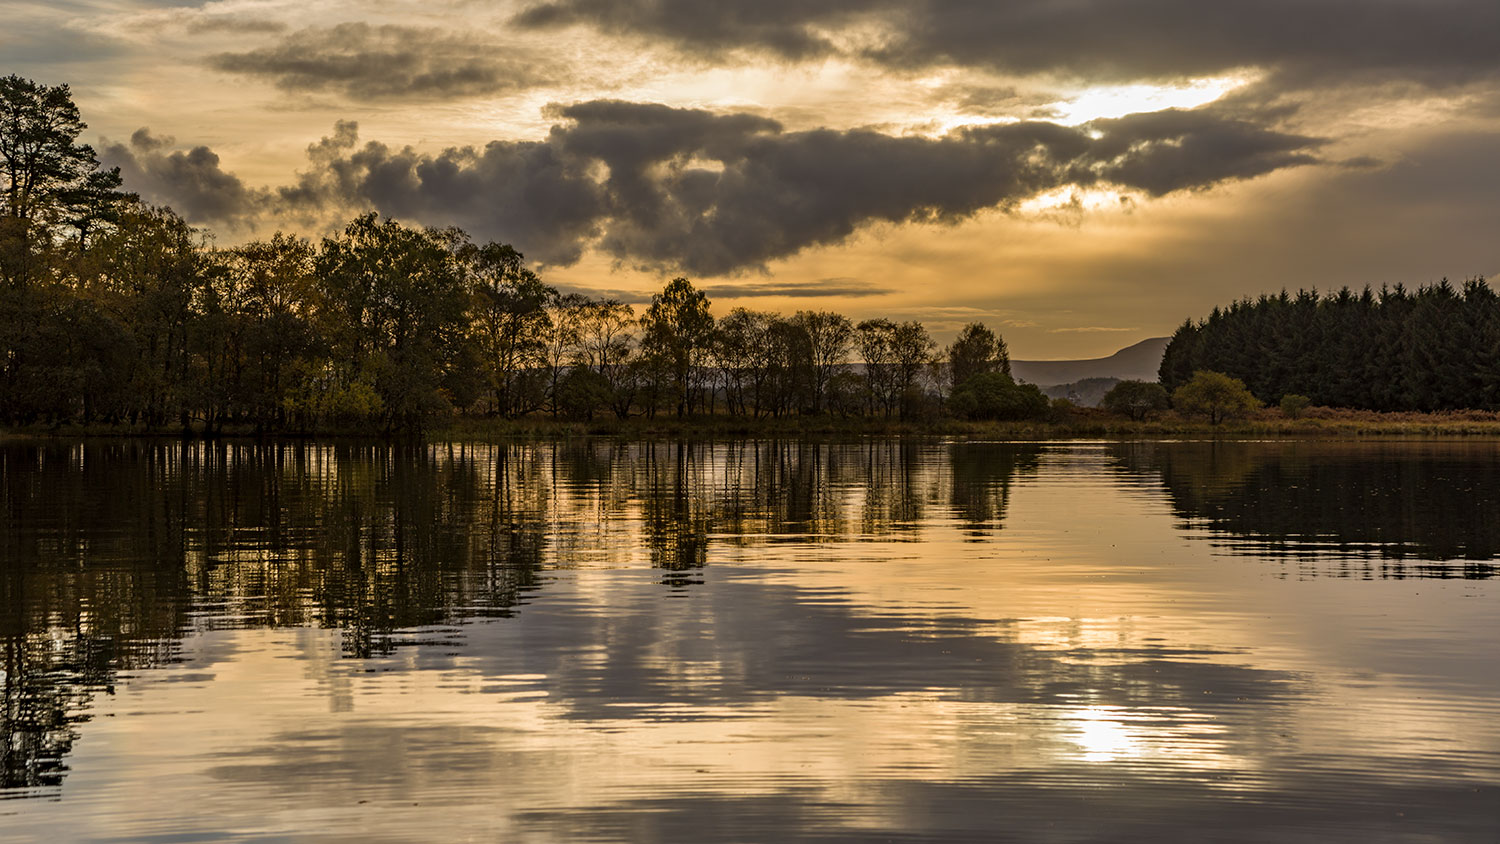 IMAGE: http://www.capnfishy.co.uk/wp-content/uploads/2018/10/Menteith18Oct18_6219.jpg